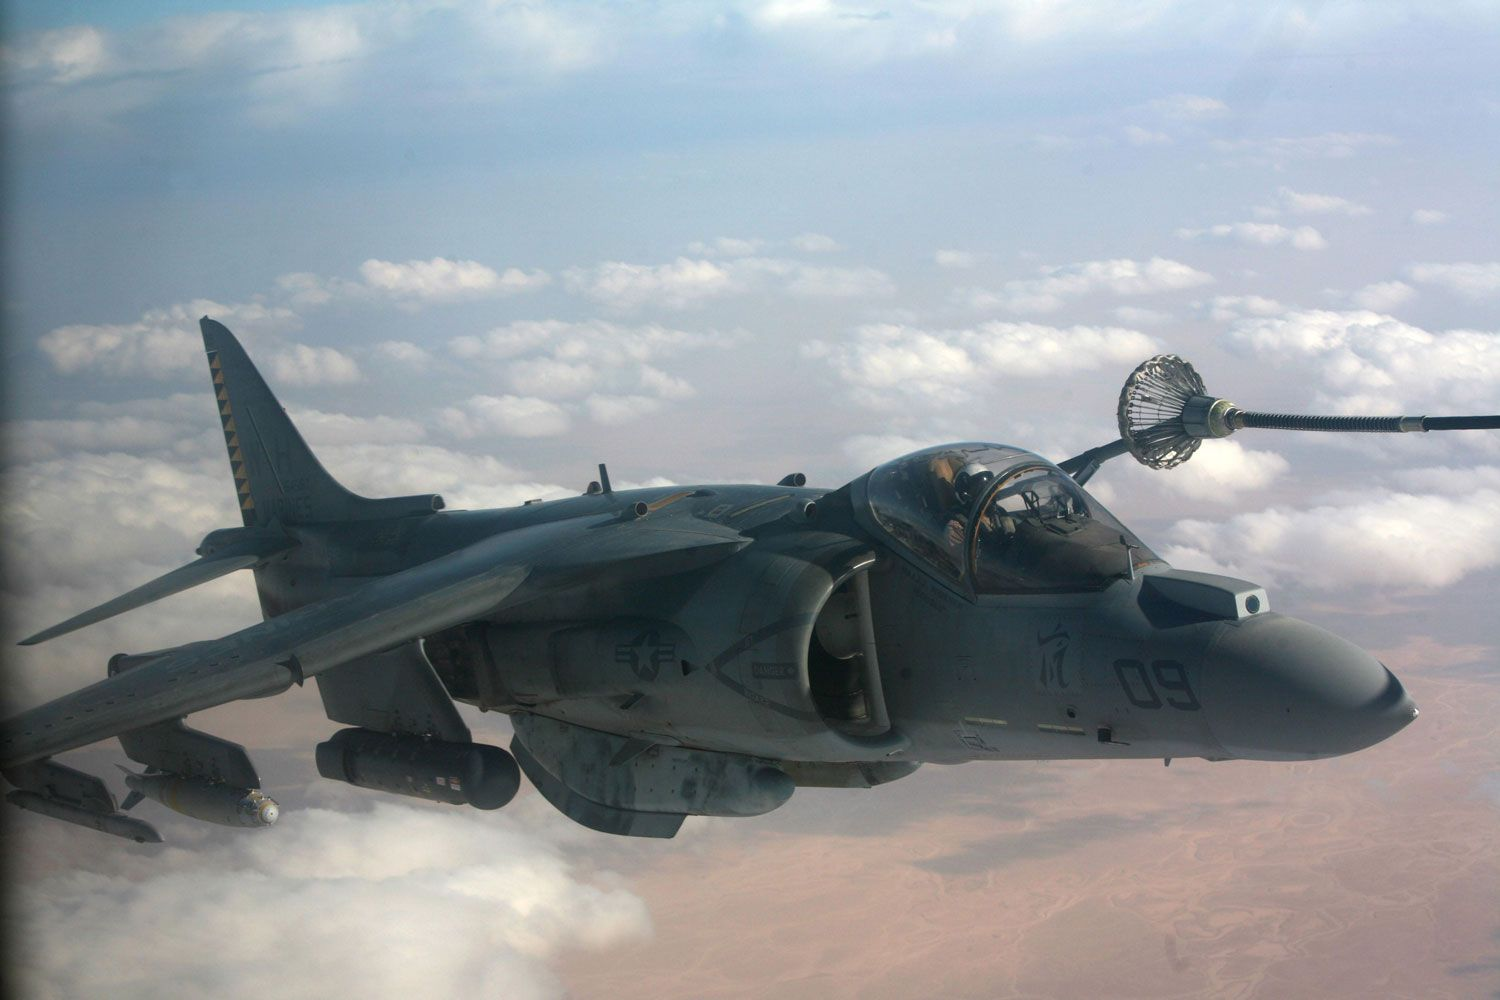 AV-8V Harrier II